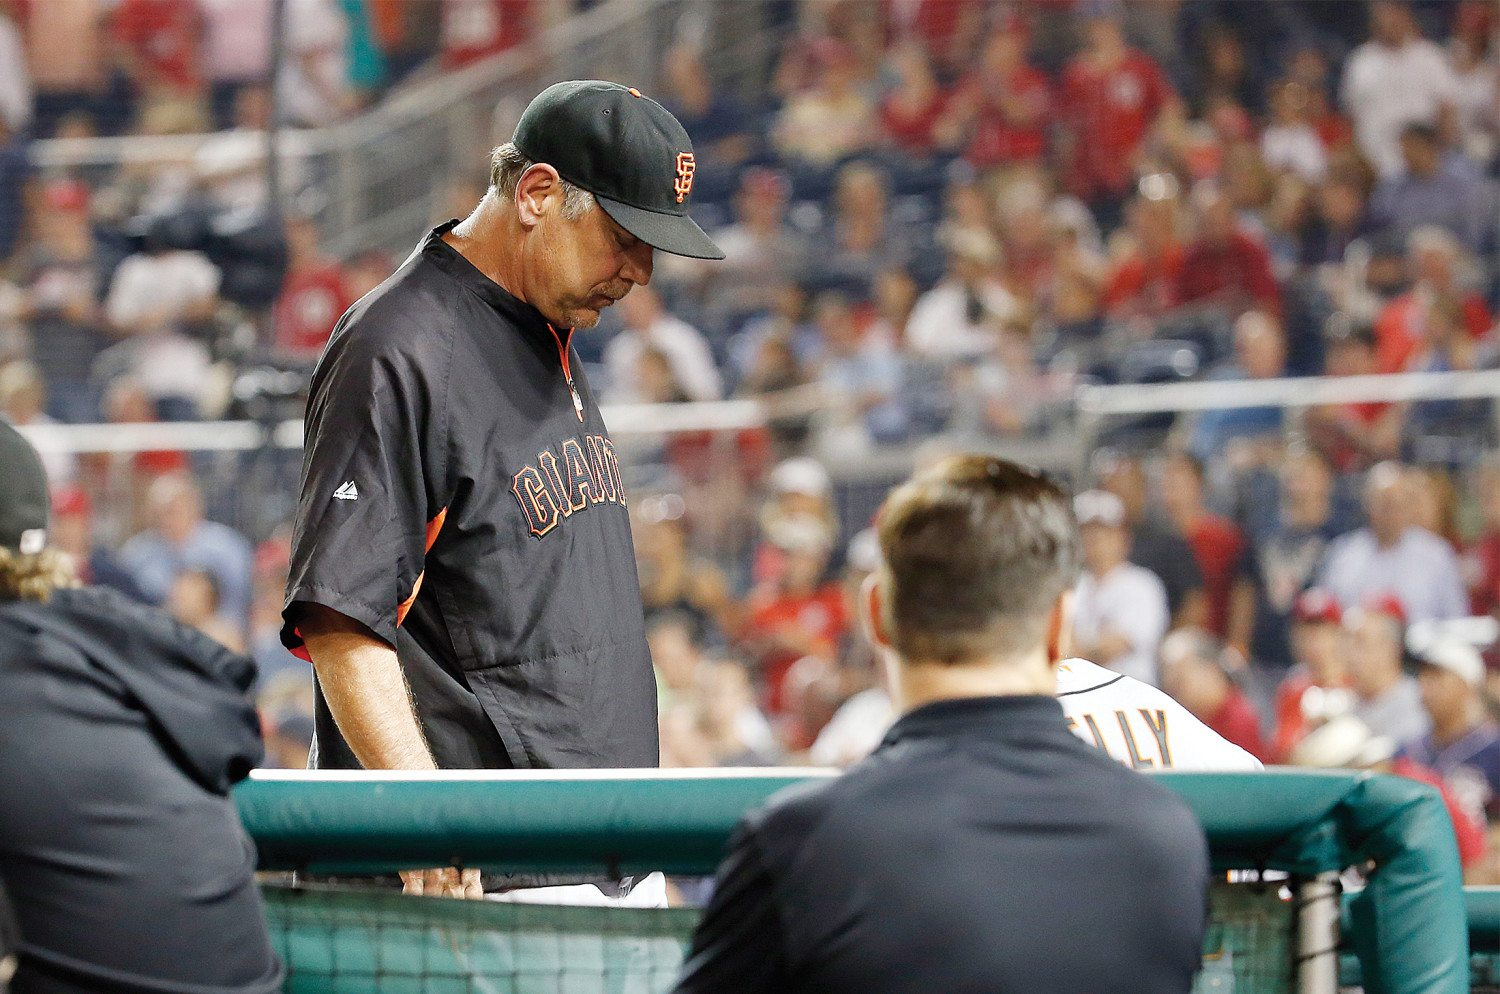 Bruce Bochy (15) heads into the dugout after being ejected during the fifth inning against the Washington Nationals on Sunday. (Alex Brandon/AP)